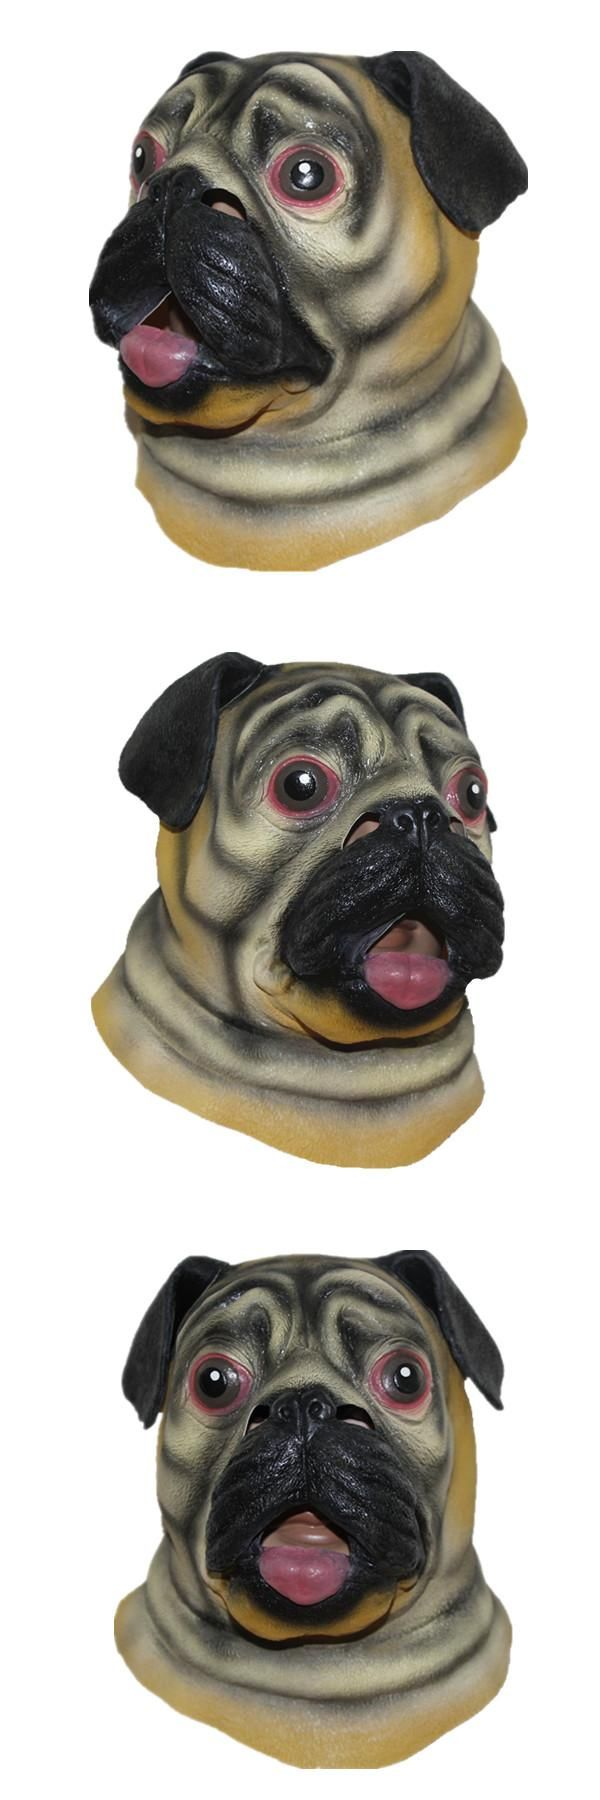 X-MERRY TOY Cute Pug Latex Mask Animal Face Head Halloween Costume Party Puppy Dog Mask